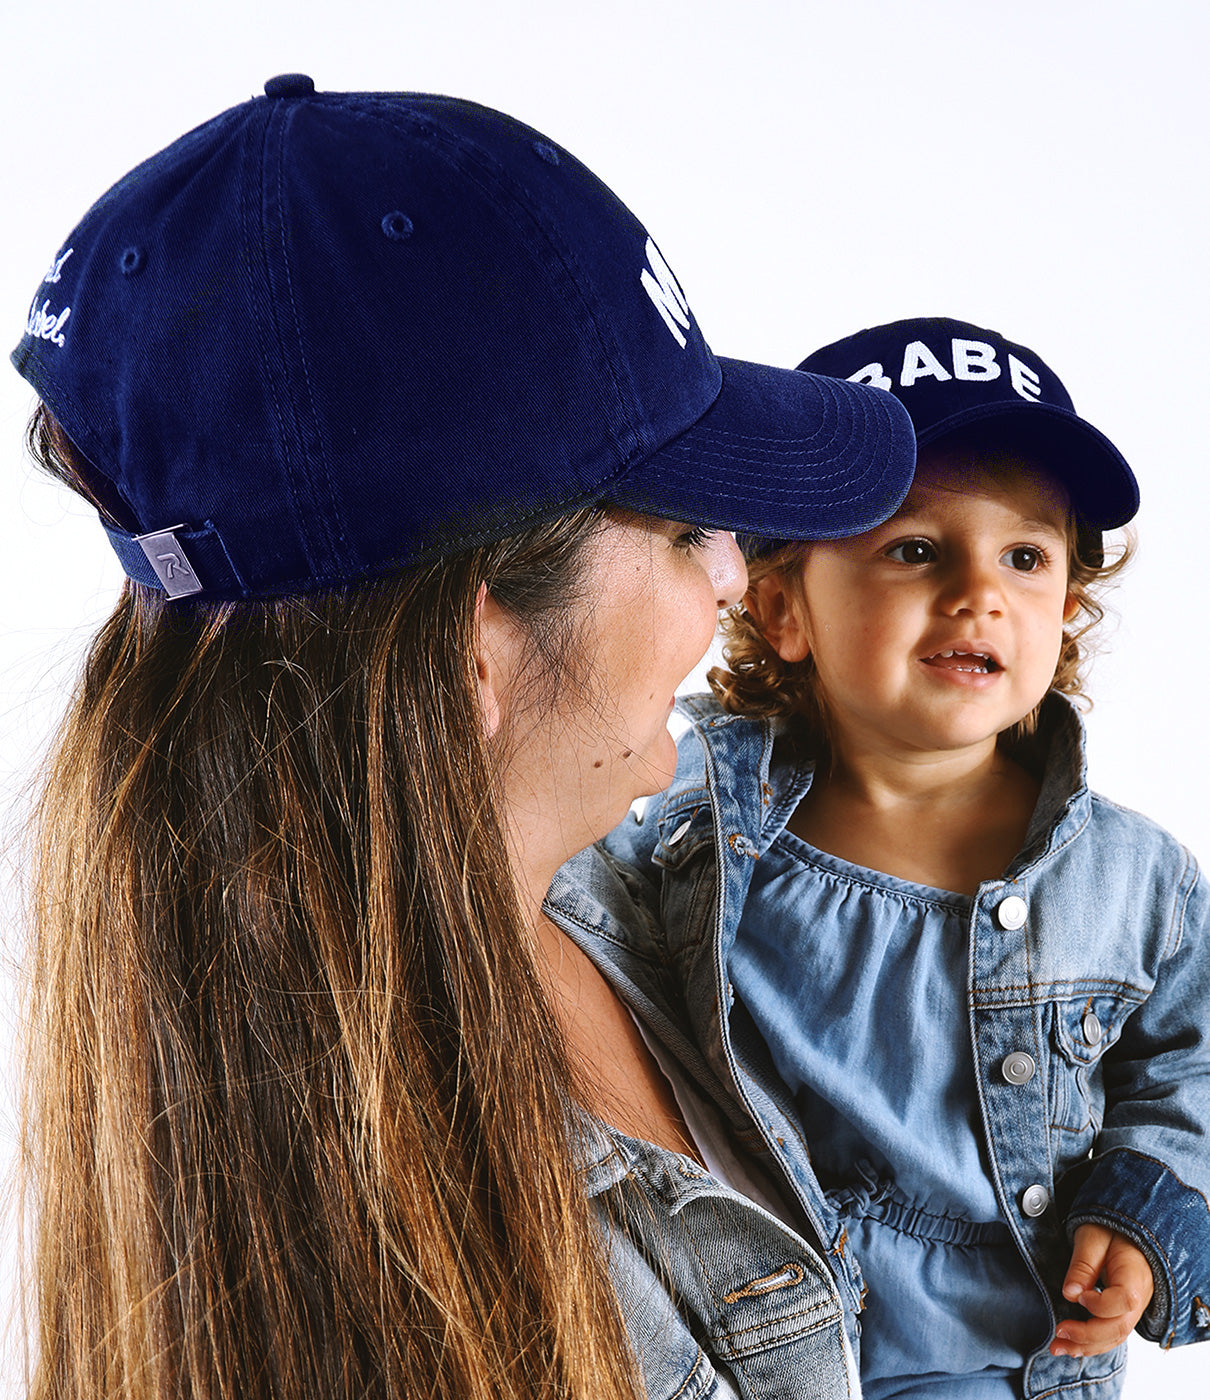 FIT FACTSMama hat features an adjustable Cloth Backstrap with bronze colored Buckle. Babe hat features a stretch fit elastic strap that fits most 12 month olds and up to 3T!